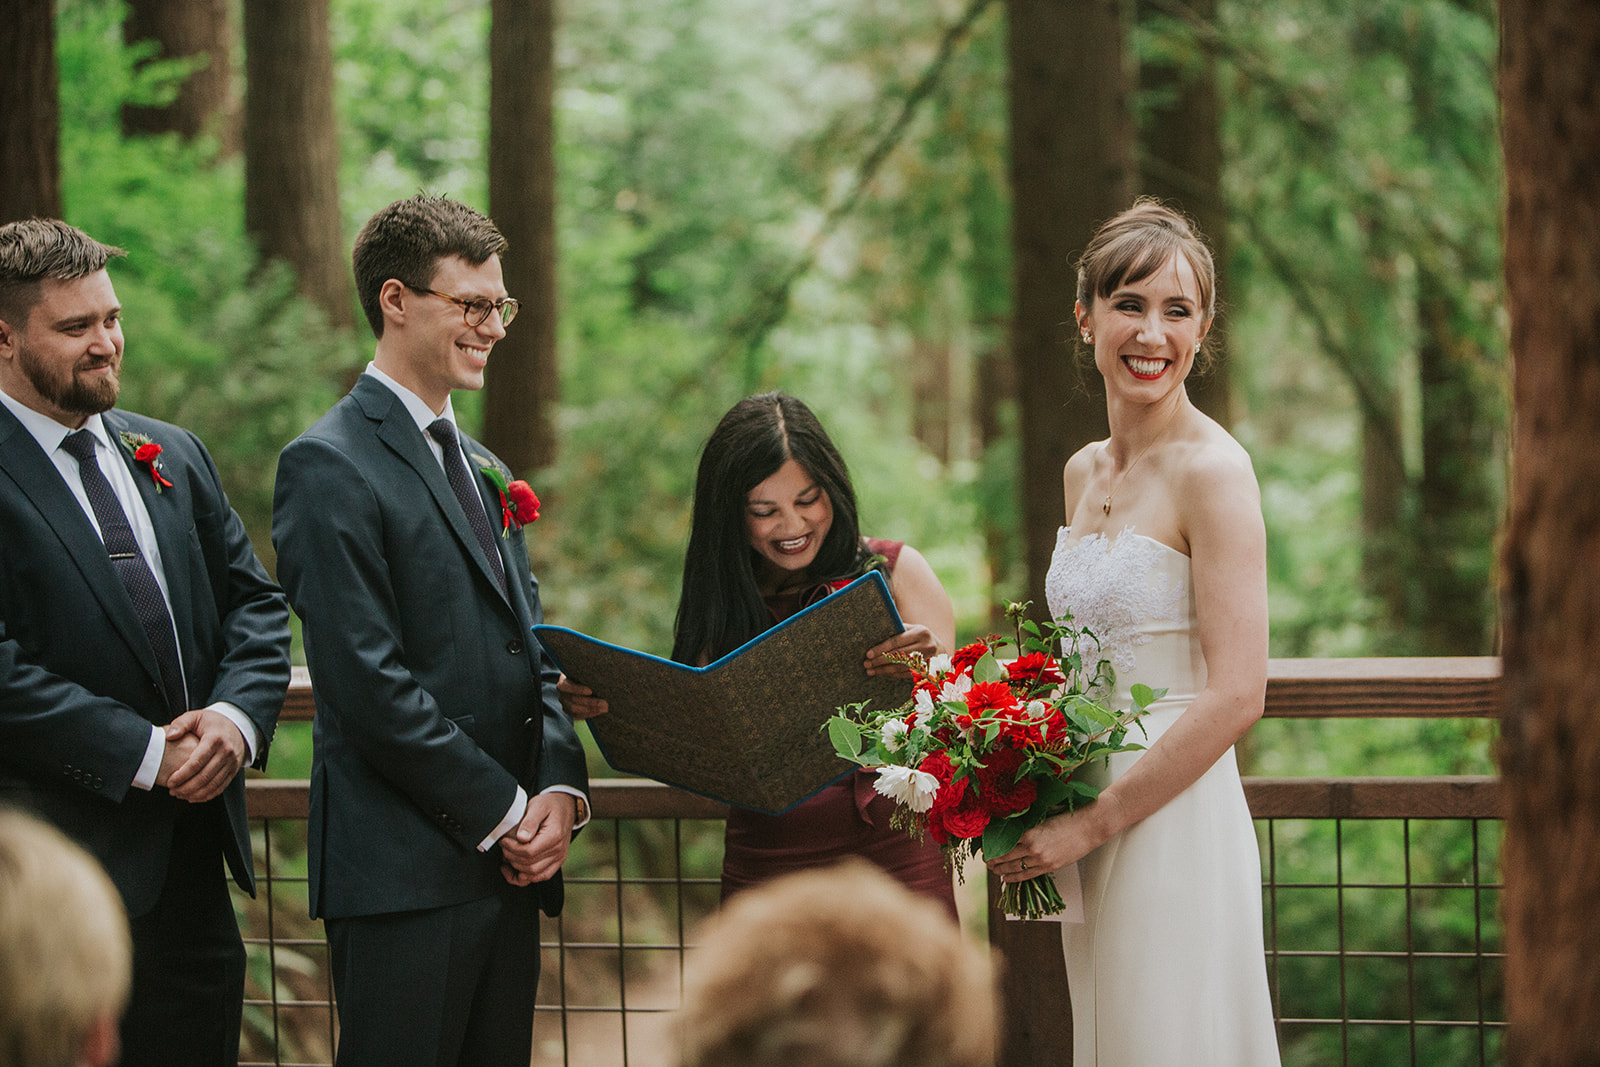 Forest-Park-wedding-vows.jpg